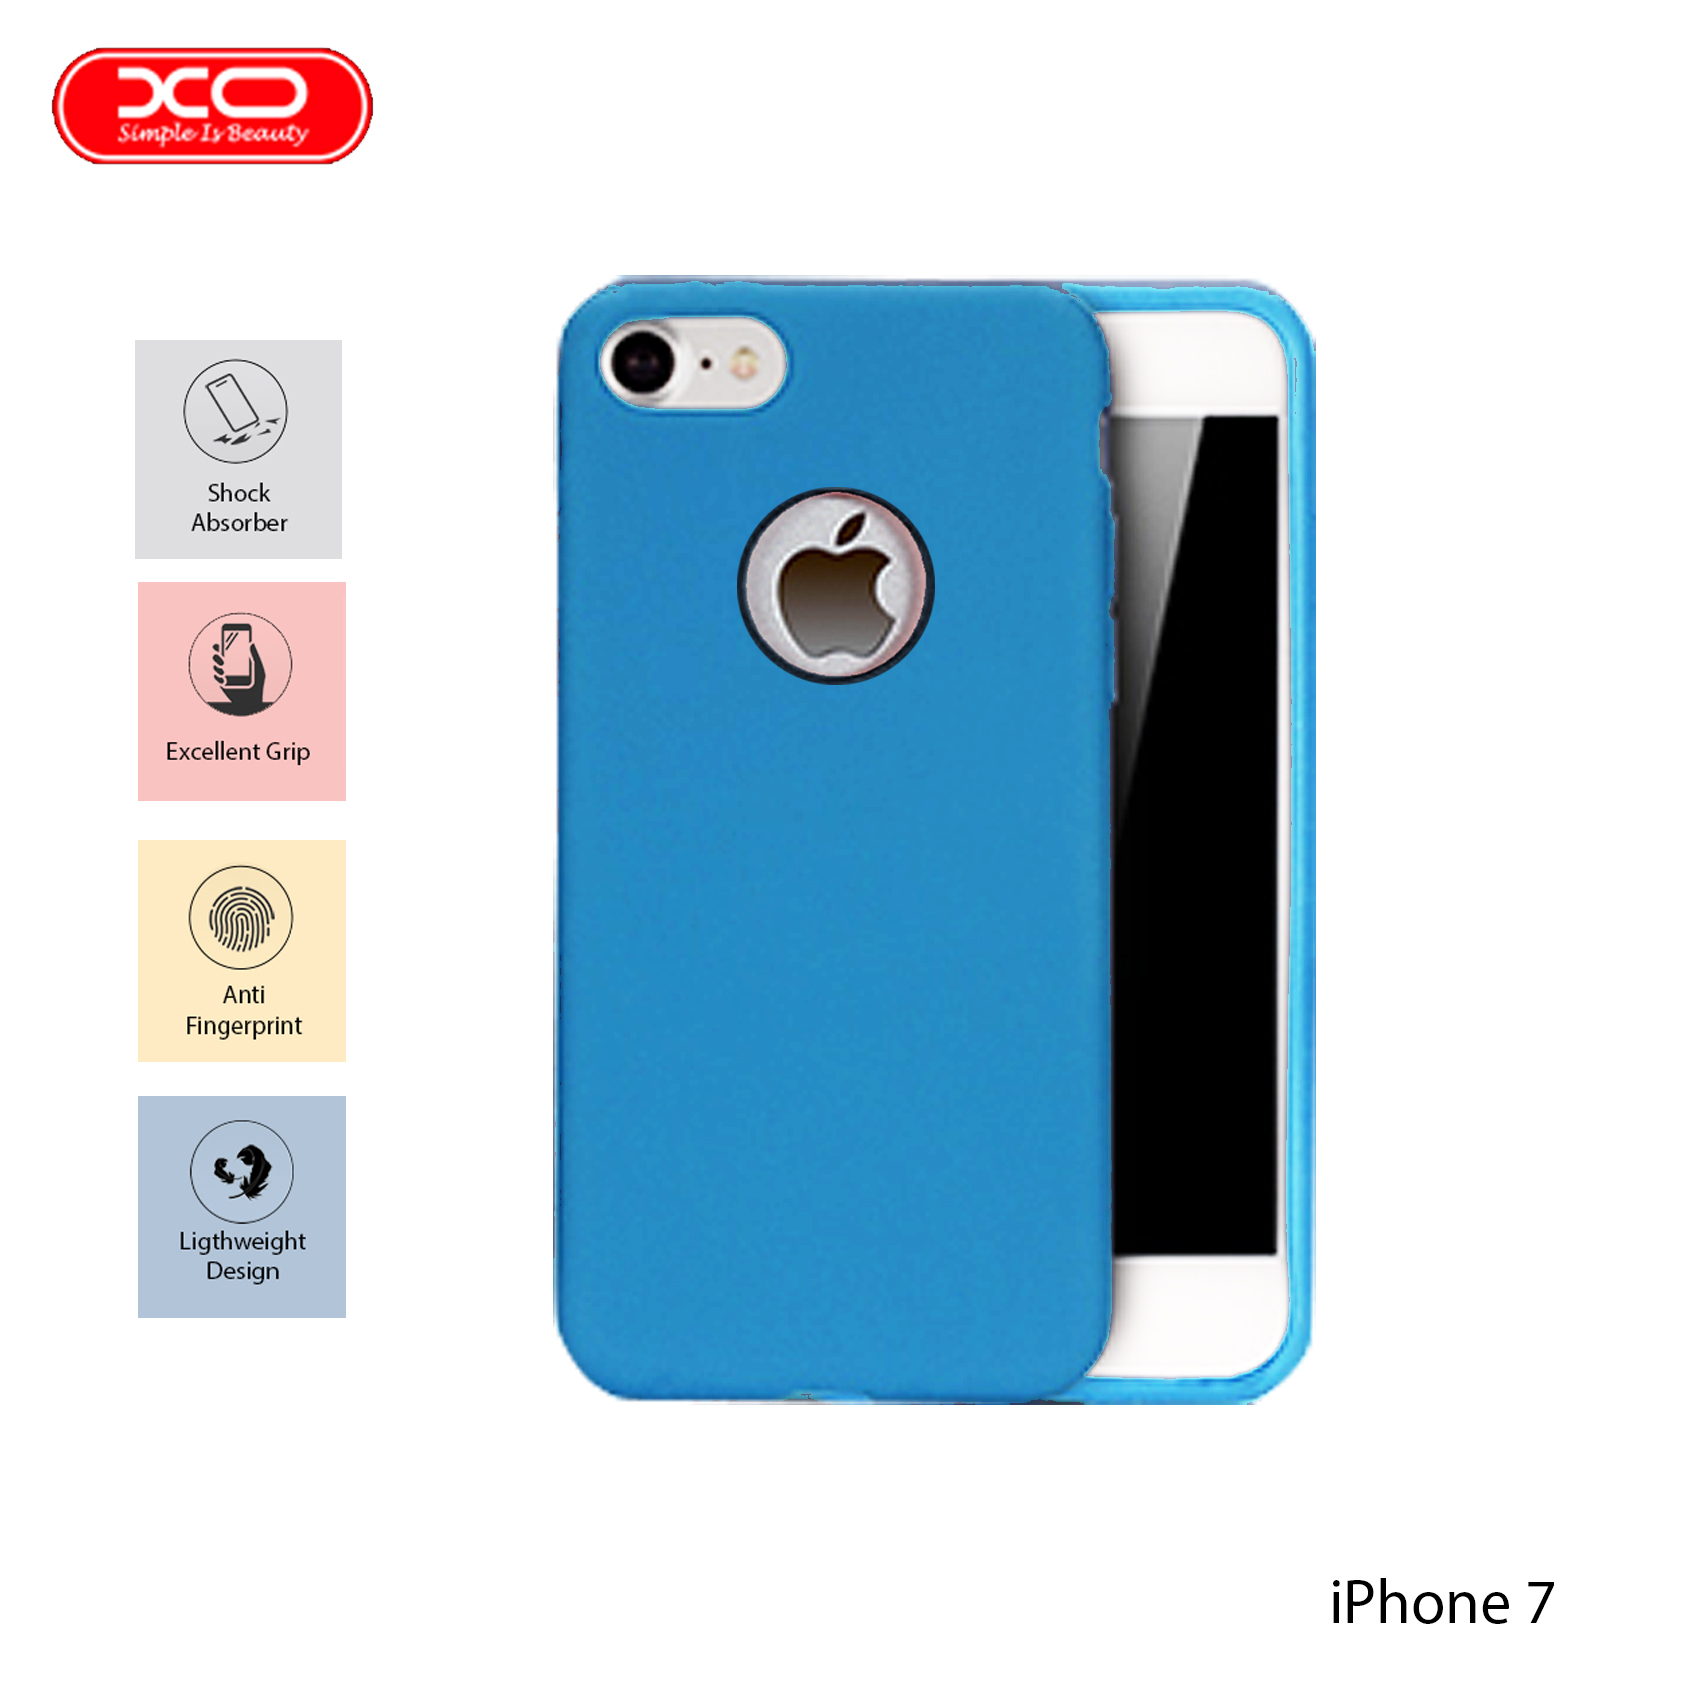 XO Magnetic Silicone Case for iPhone 7 - Blue